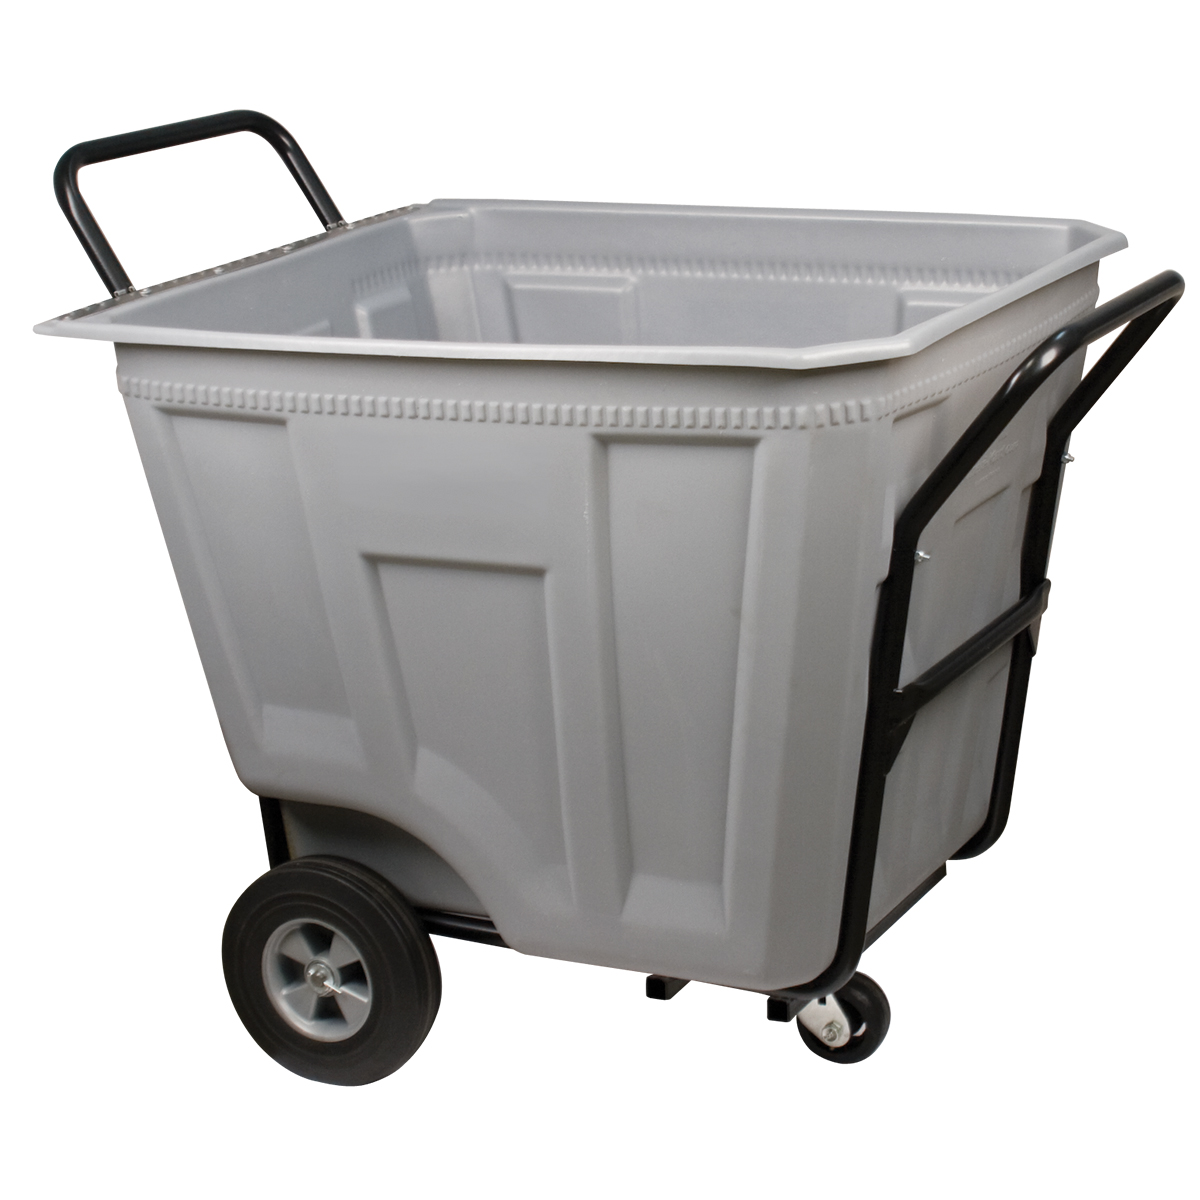 Akro-Cart Heavy-Duty 90 Gal, 30-1/2 x 47 x 39-1/2, Gray (76590GREY).  This item sold in carton quantities of 1.